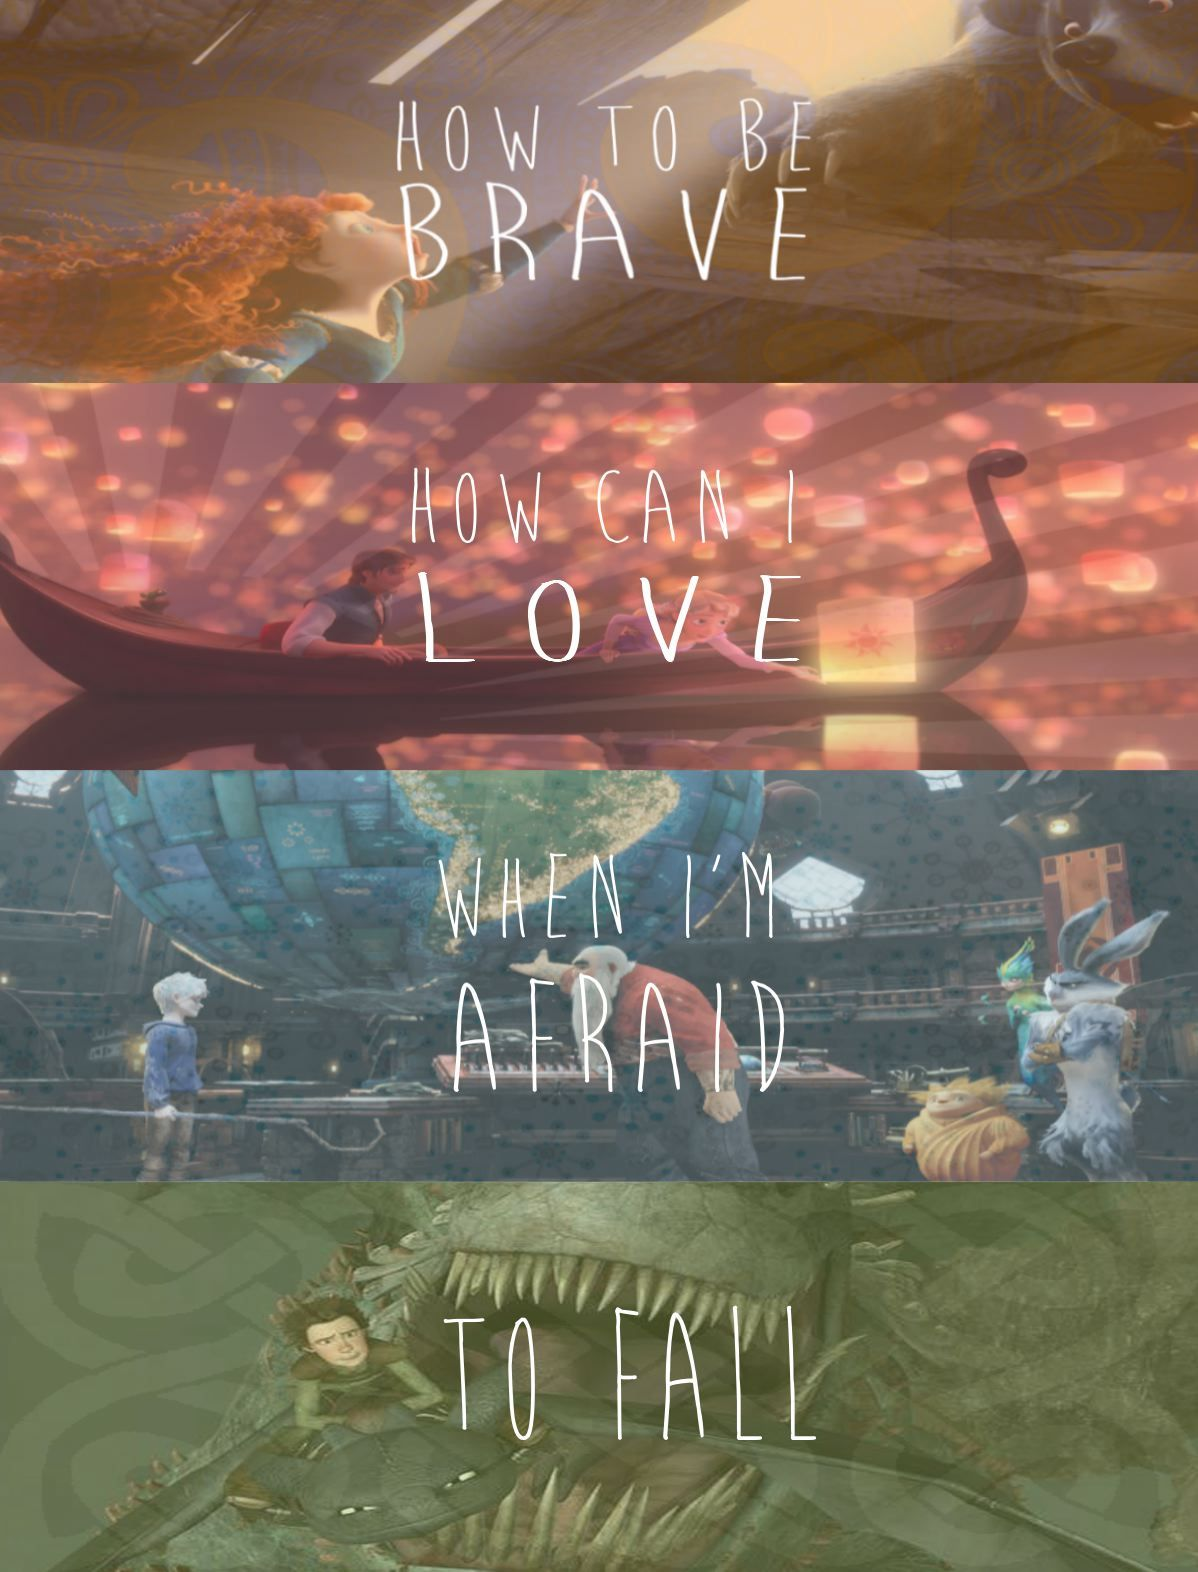 Rise of the Guardians, Brave, Tangled, and How to Train Your Dragon mashup